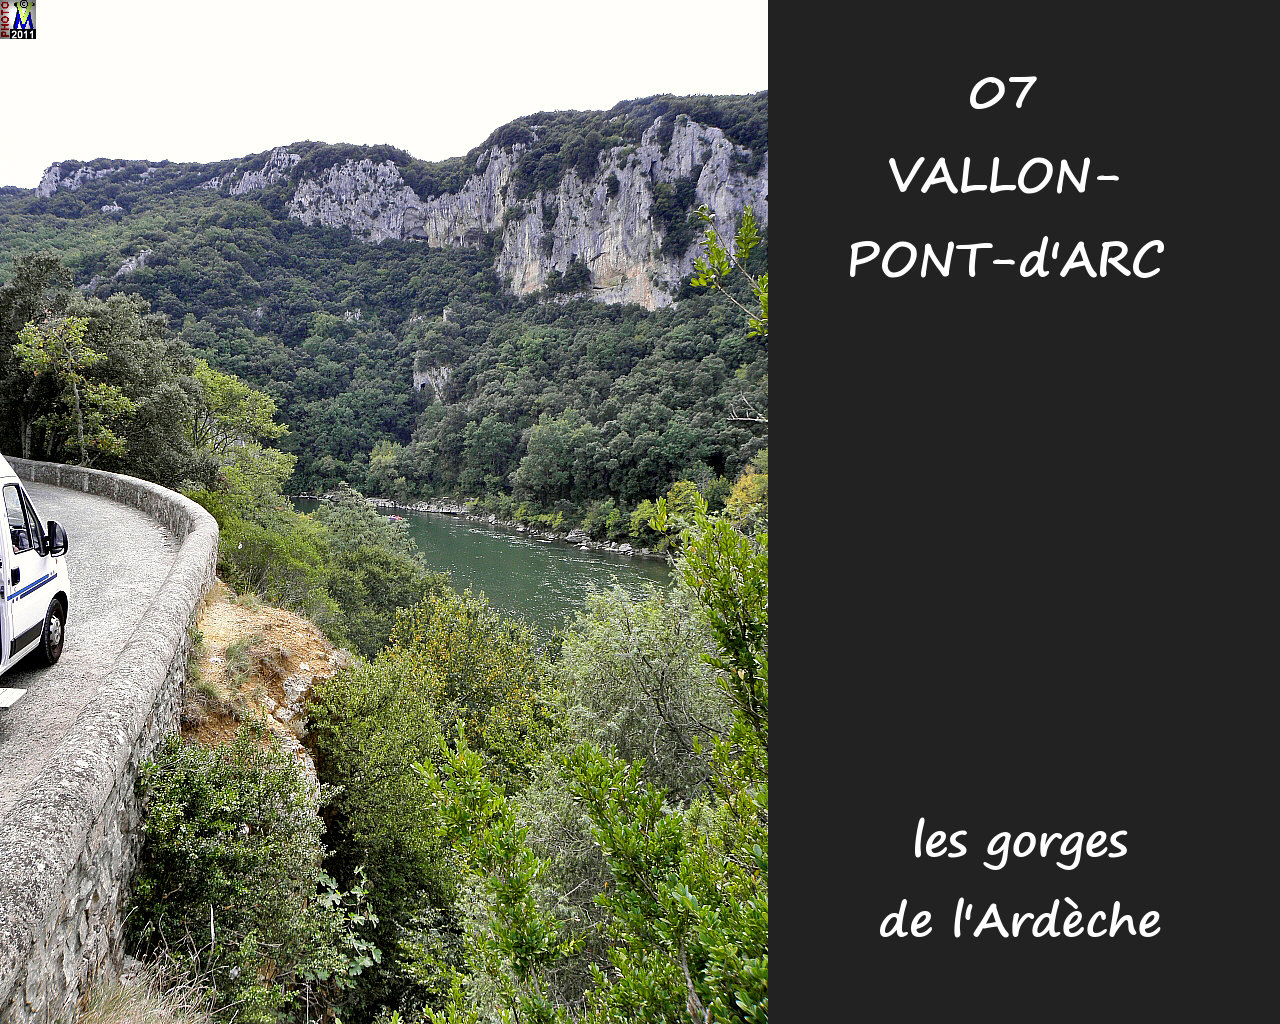 07VALLON-PONT-ARC_gorges_106.jpg